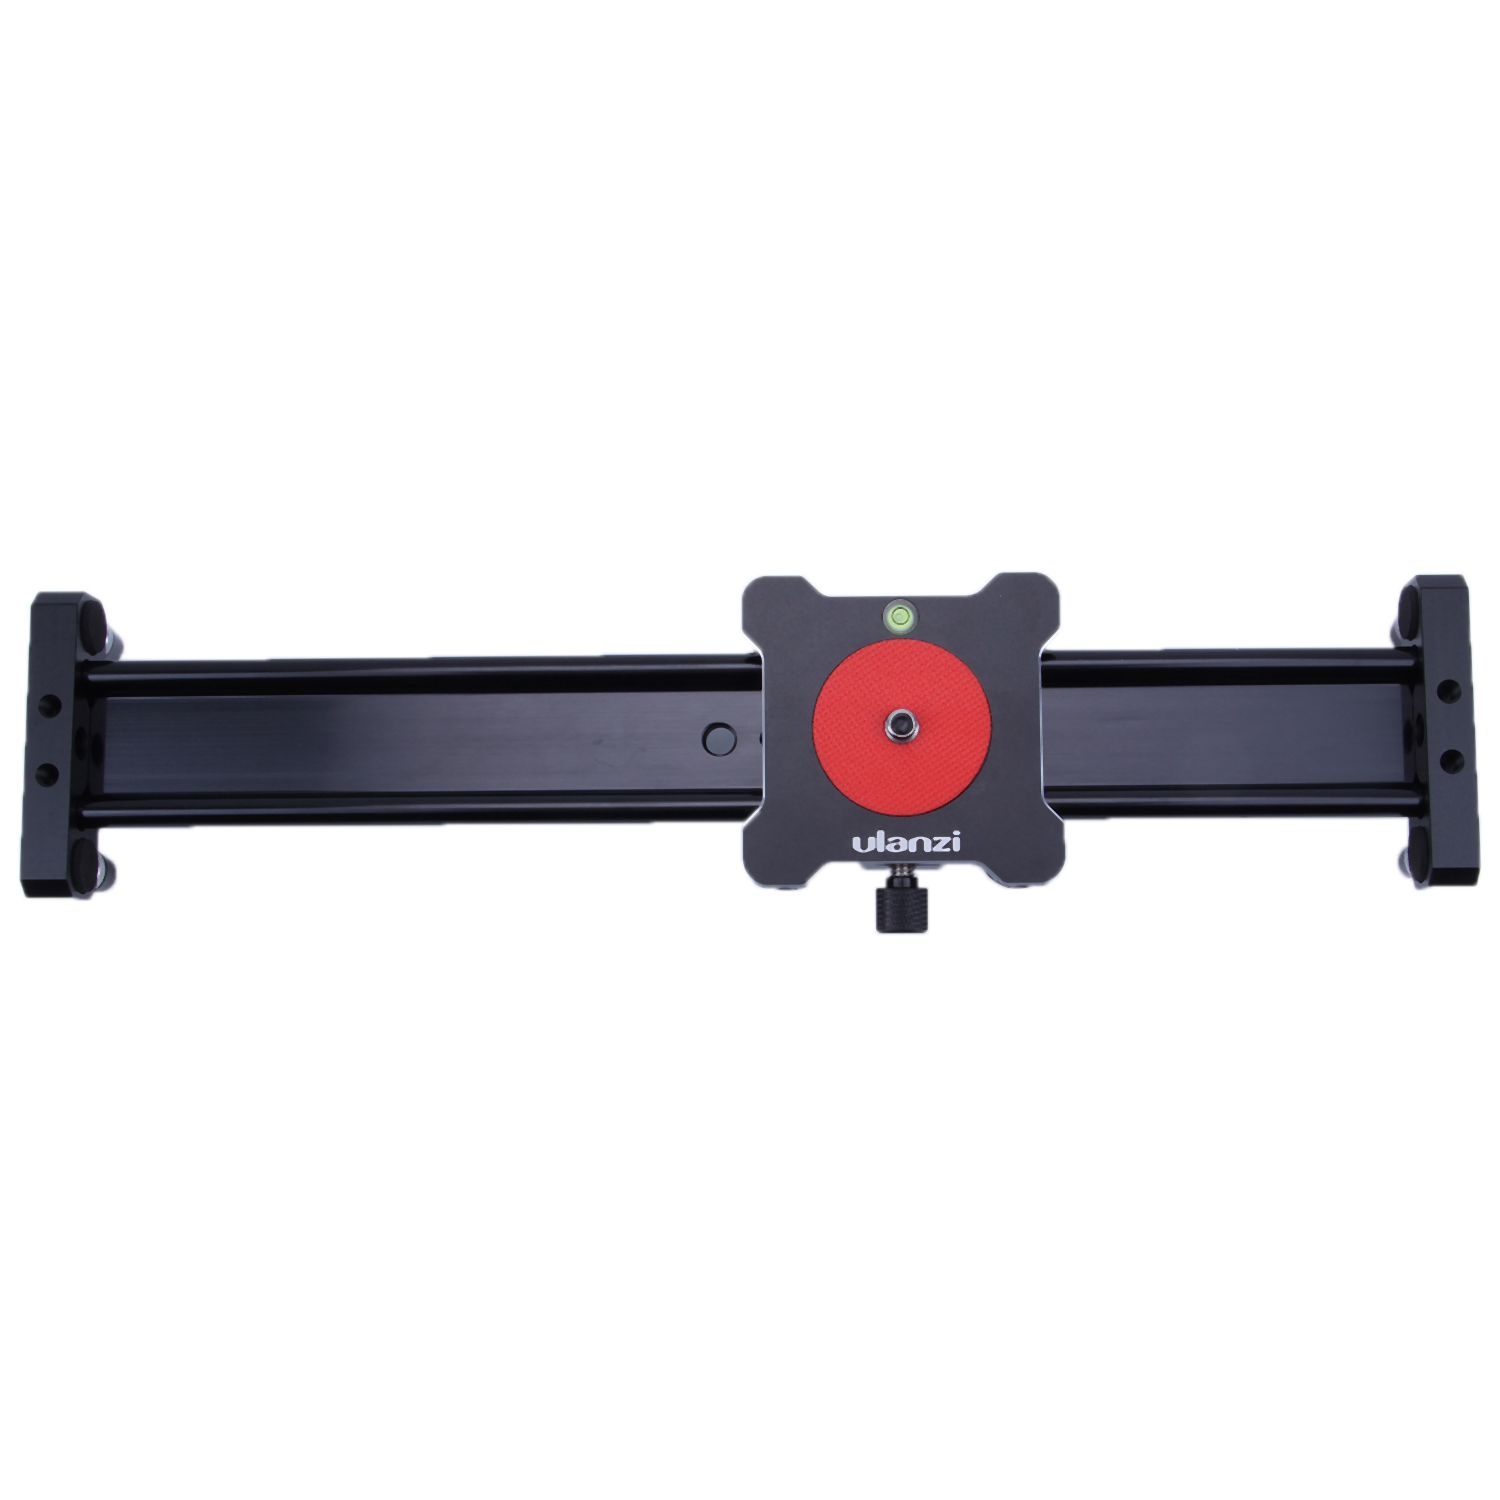 $31.78 FFYY-Ulanzi 40cm/15inch Phone Video Slider Dolly, Portable Compact Track Travel Slider Rail System Stabilizer for iPhone Samsu